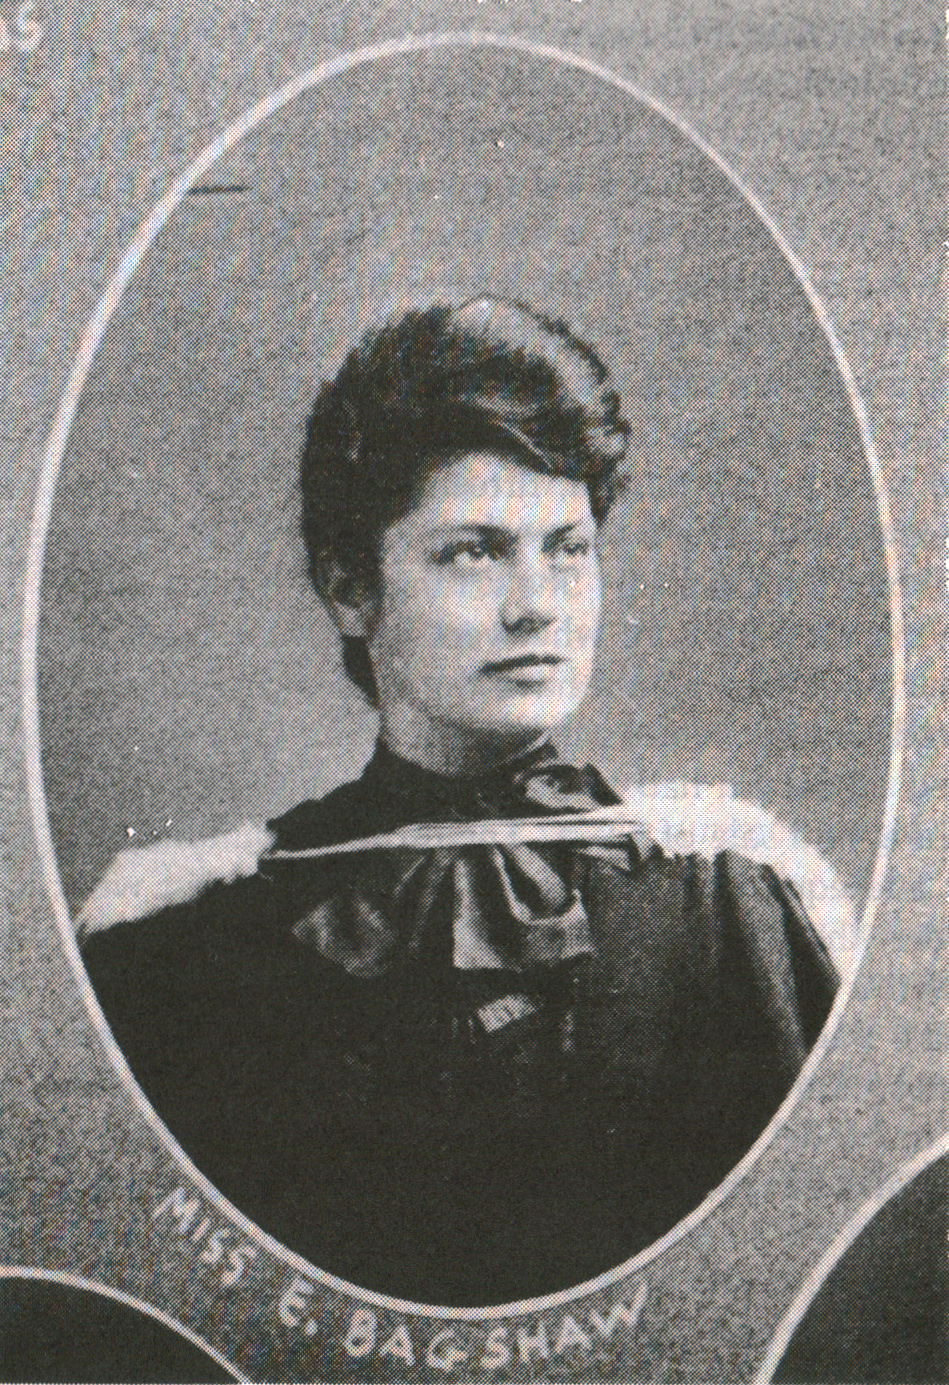 Graduation photo of Elizabeth Bagshaw